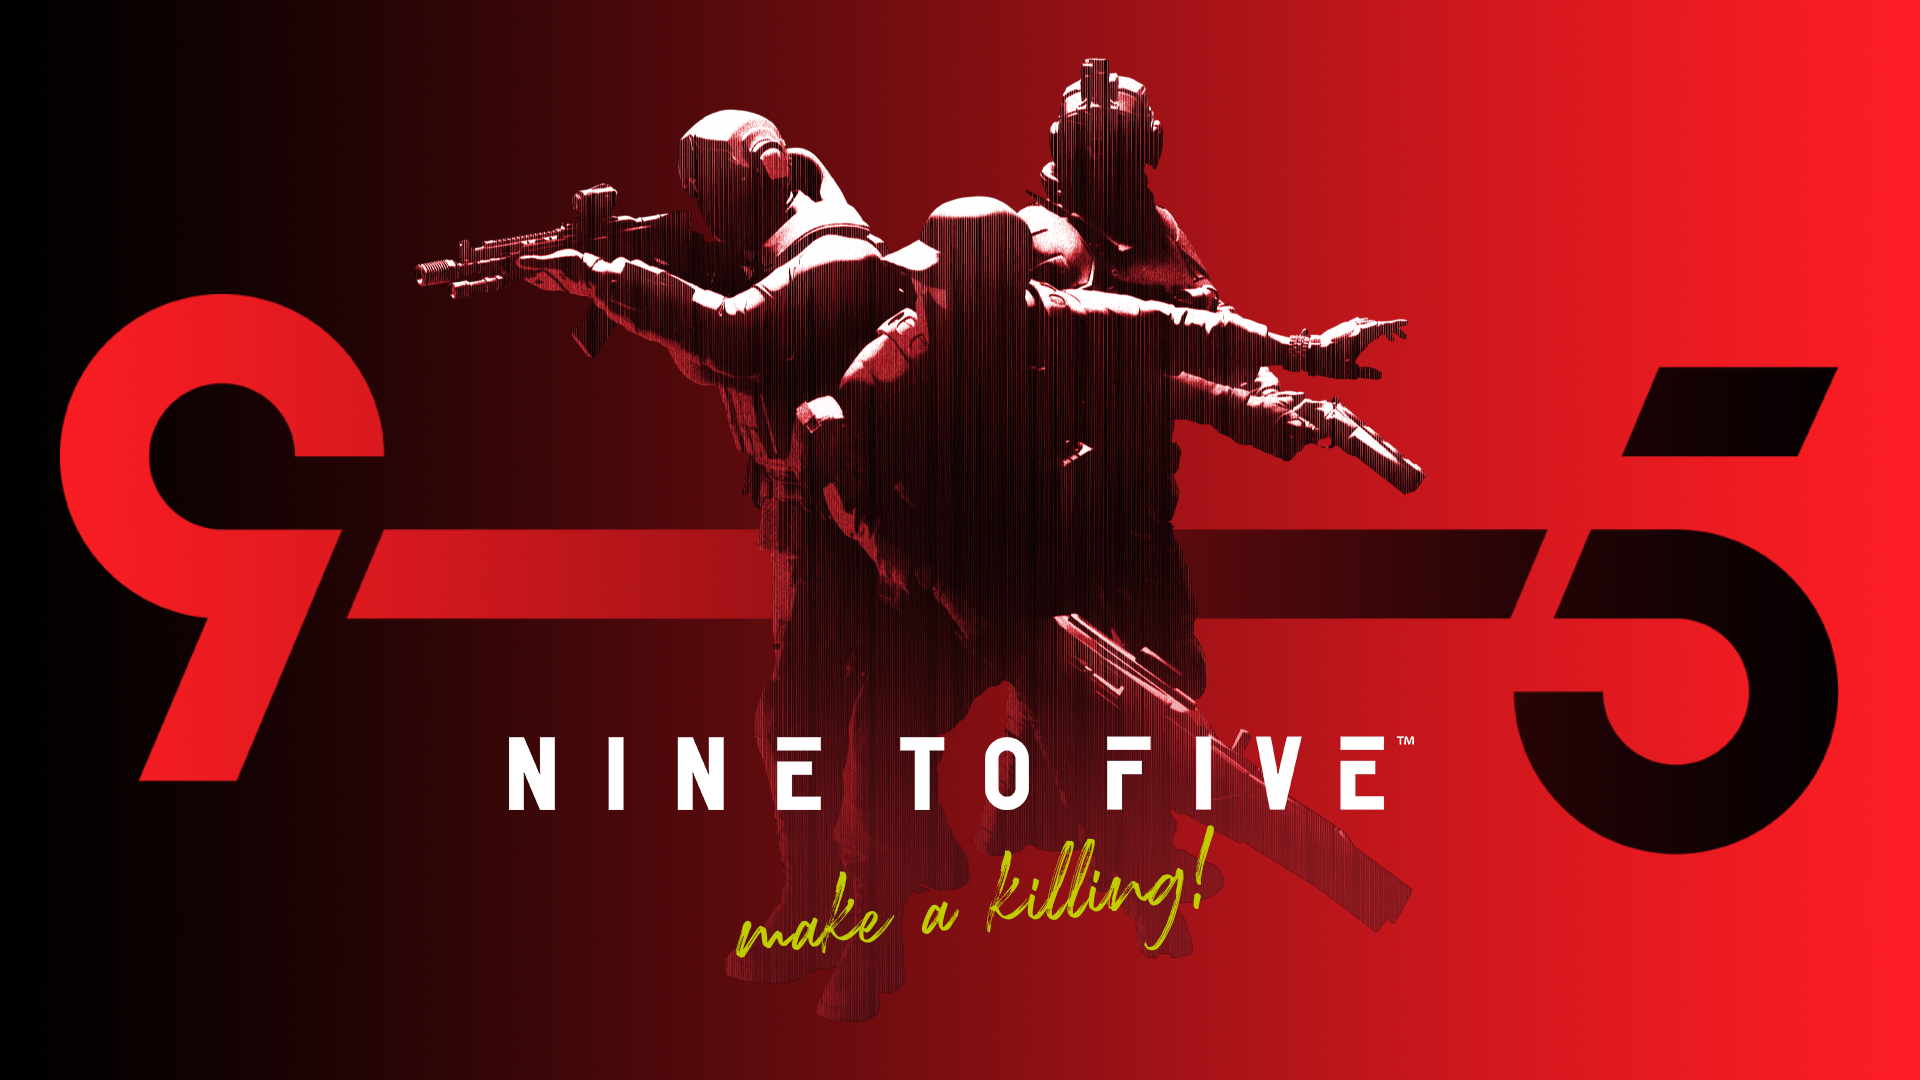 Nine to Five: Public beta for the 3vs3vs3 shooter starts today